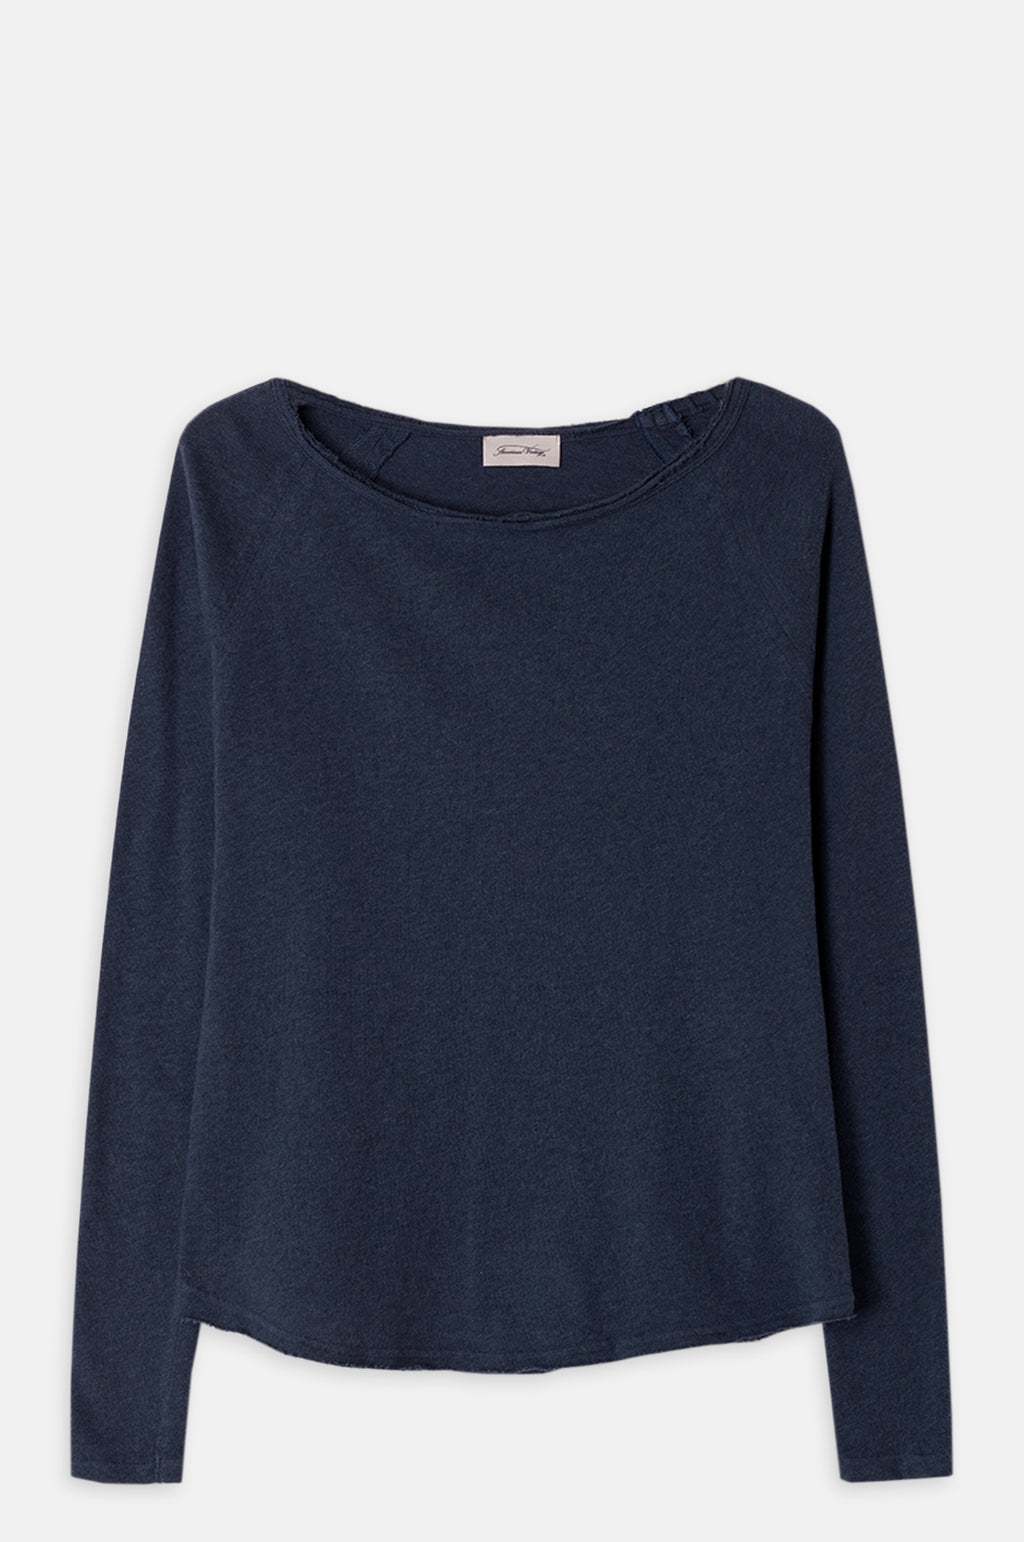 Sonoma Boat Neck T Shirt in Cosmos Melange